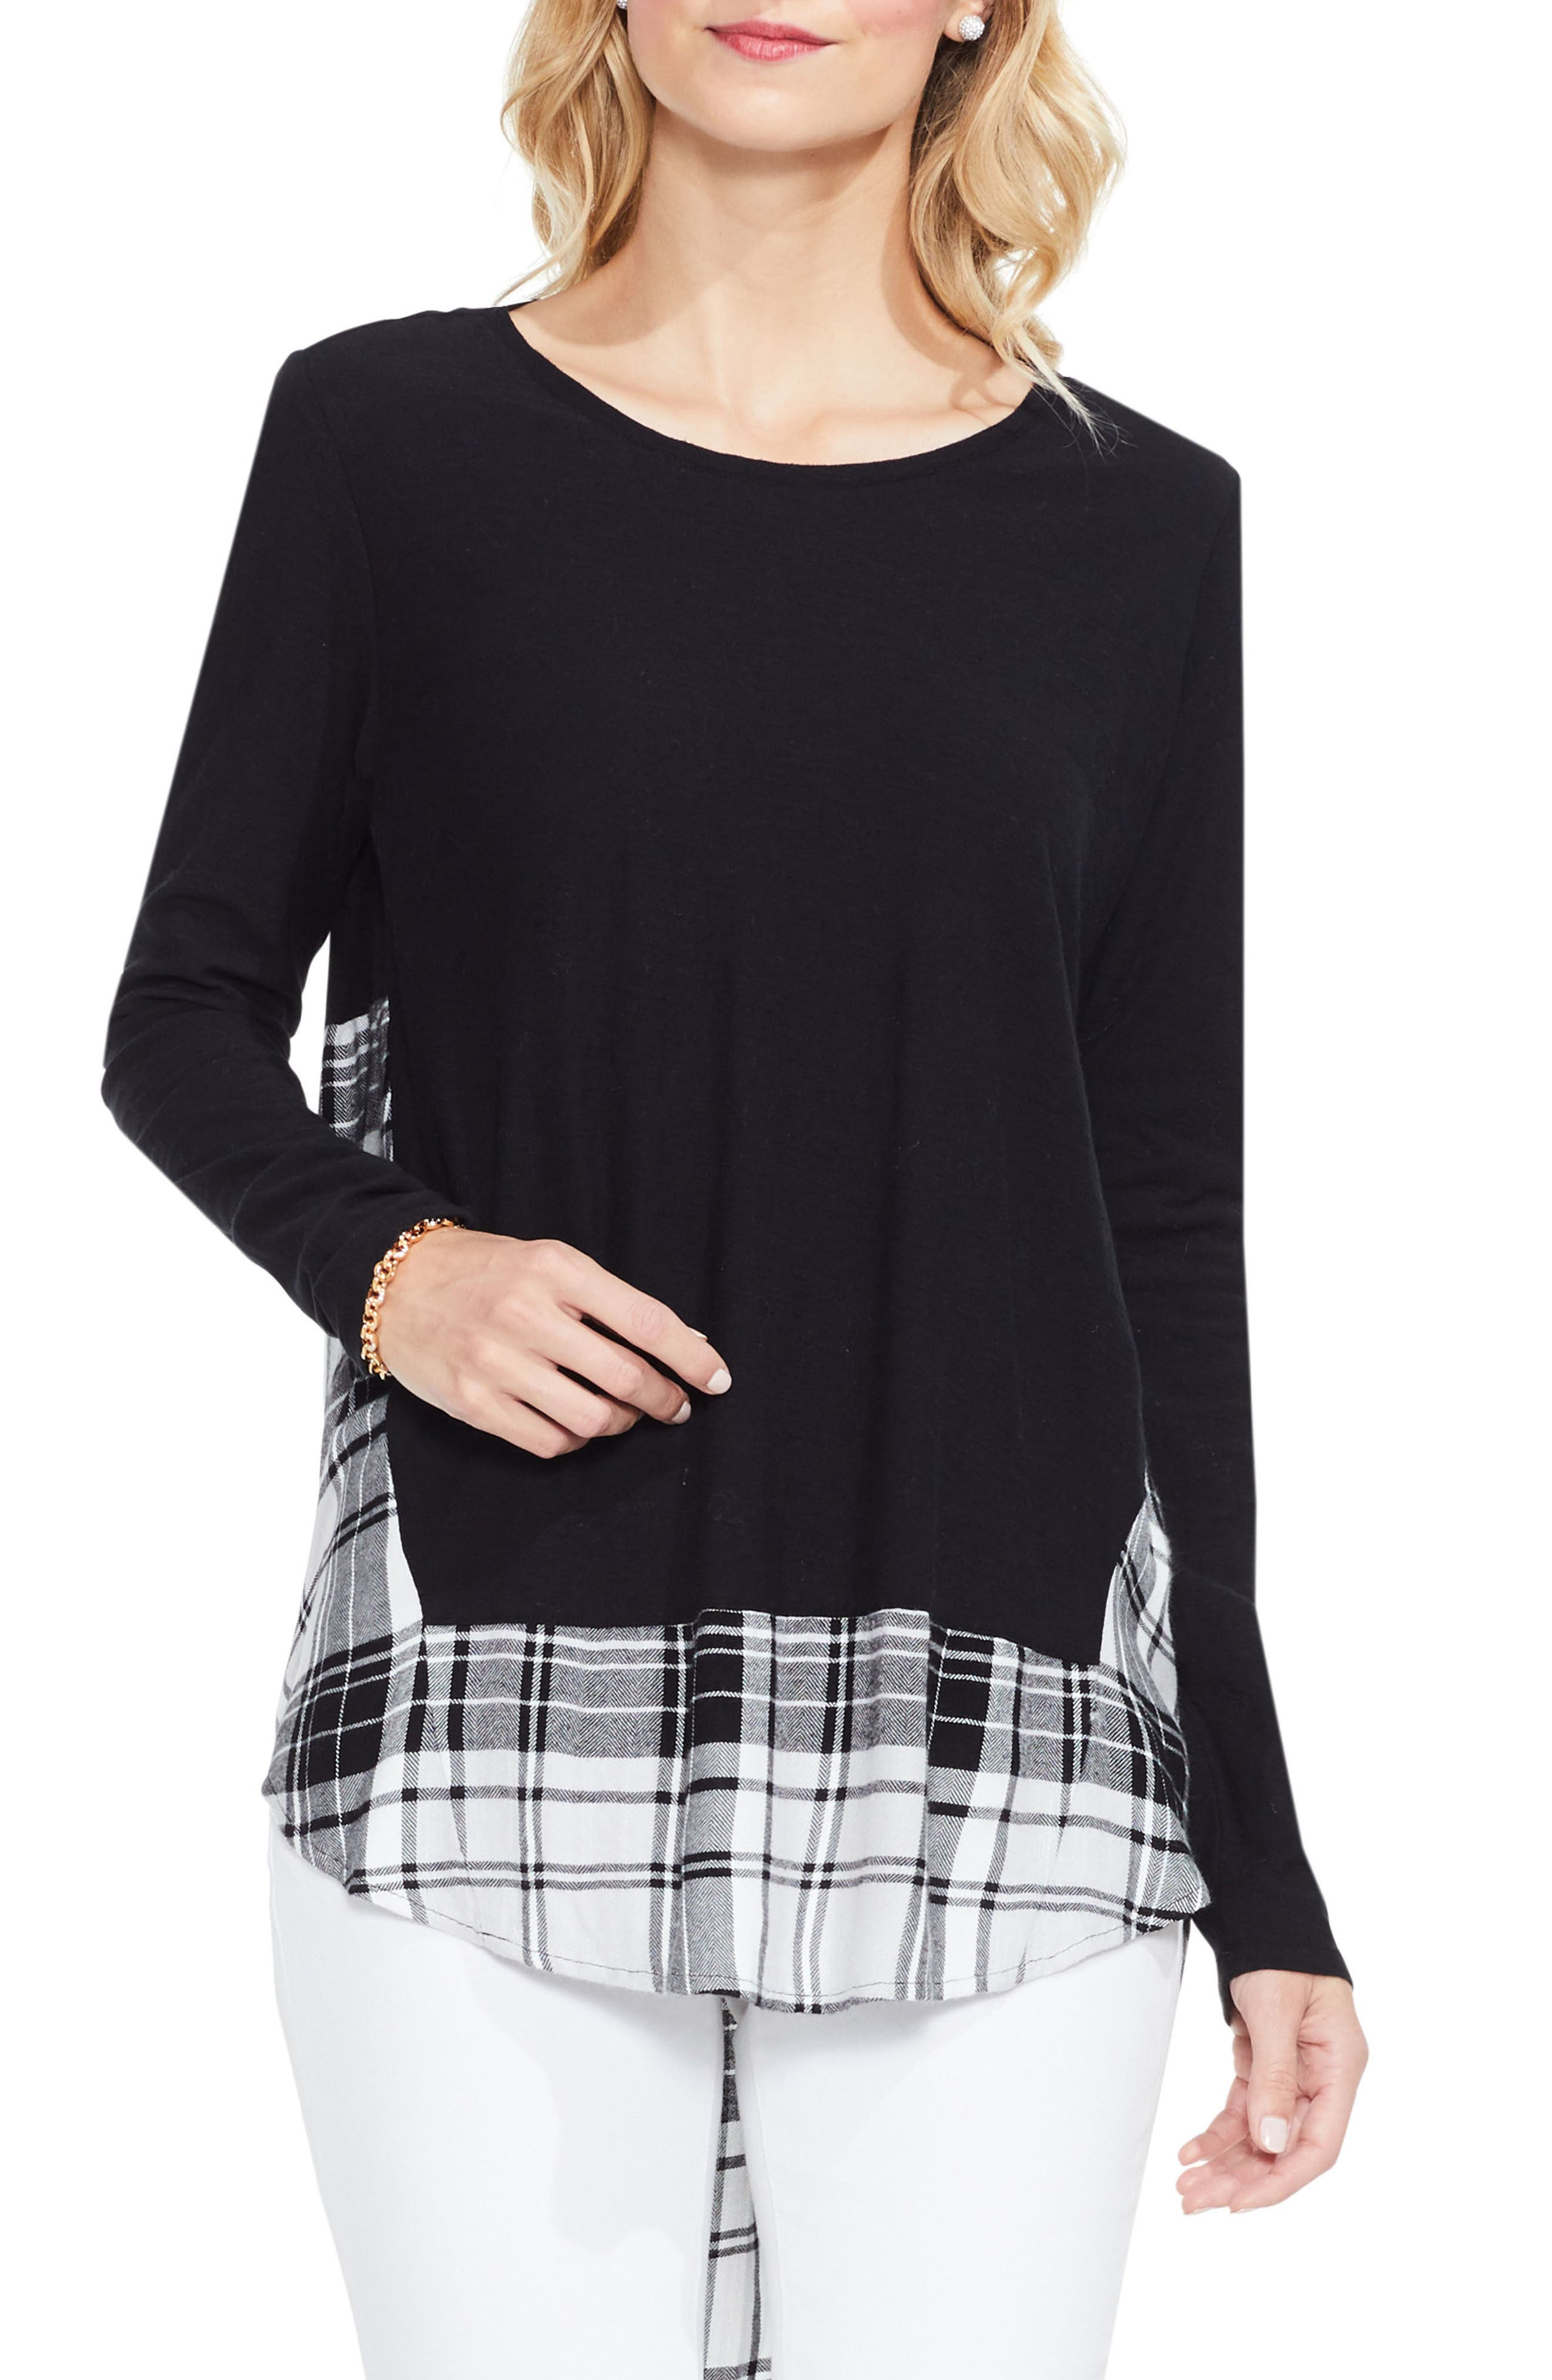 Alternate Image 1 Selected - Two by Vince Camuto Solid & Plaid Top